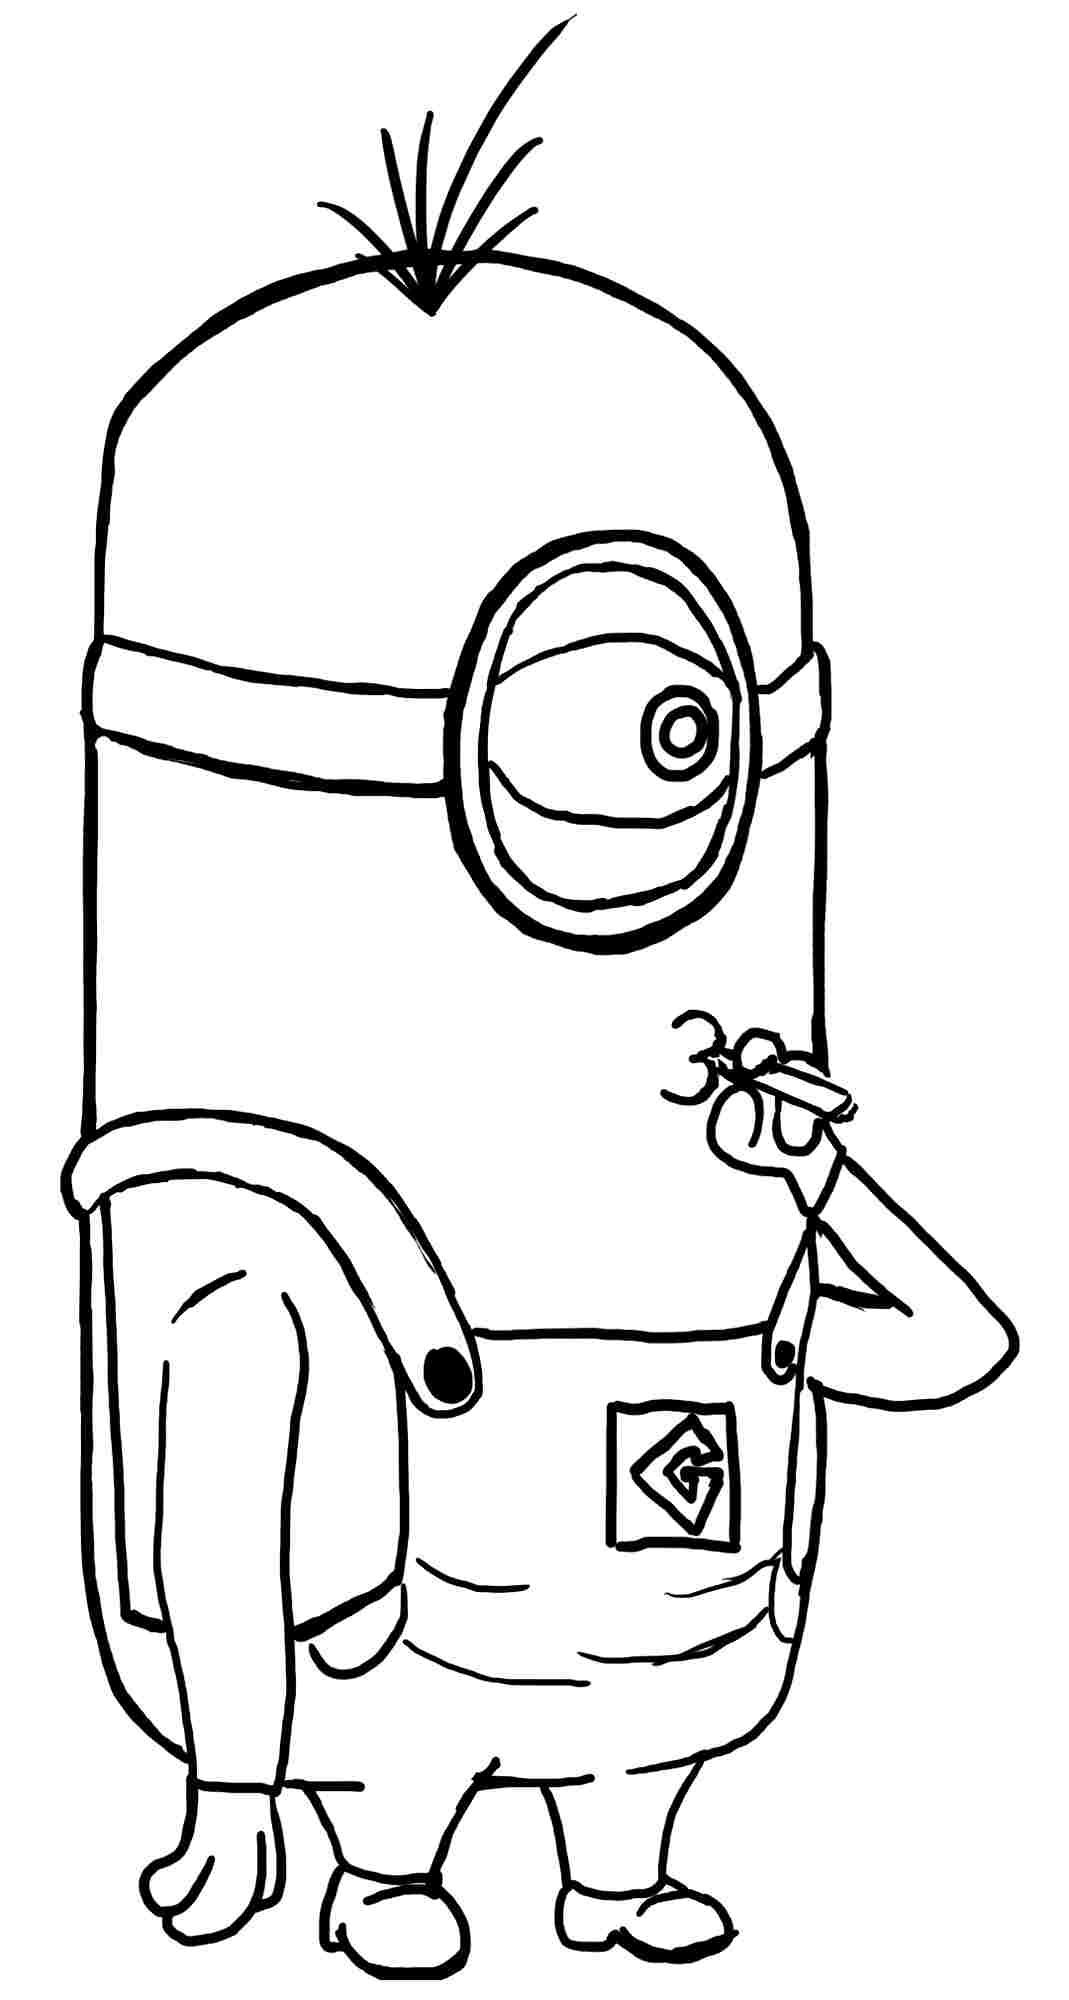 Coloring Pages Despicable Me Minion Anime Movie Printable Free For ...